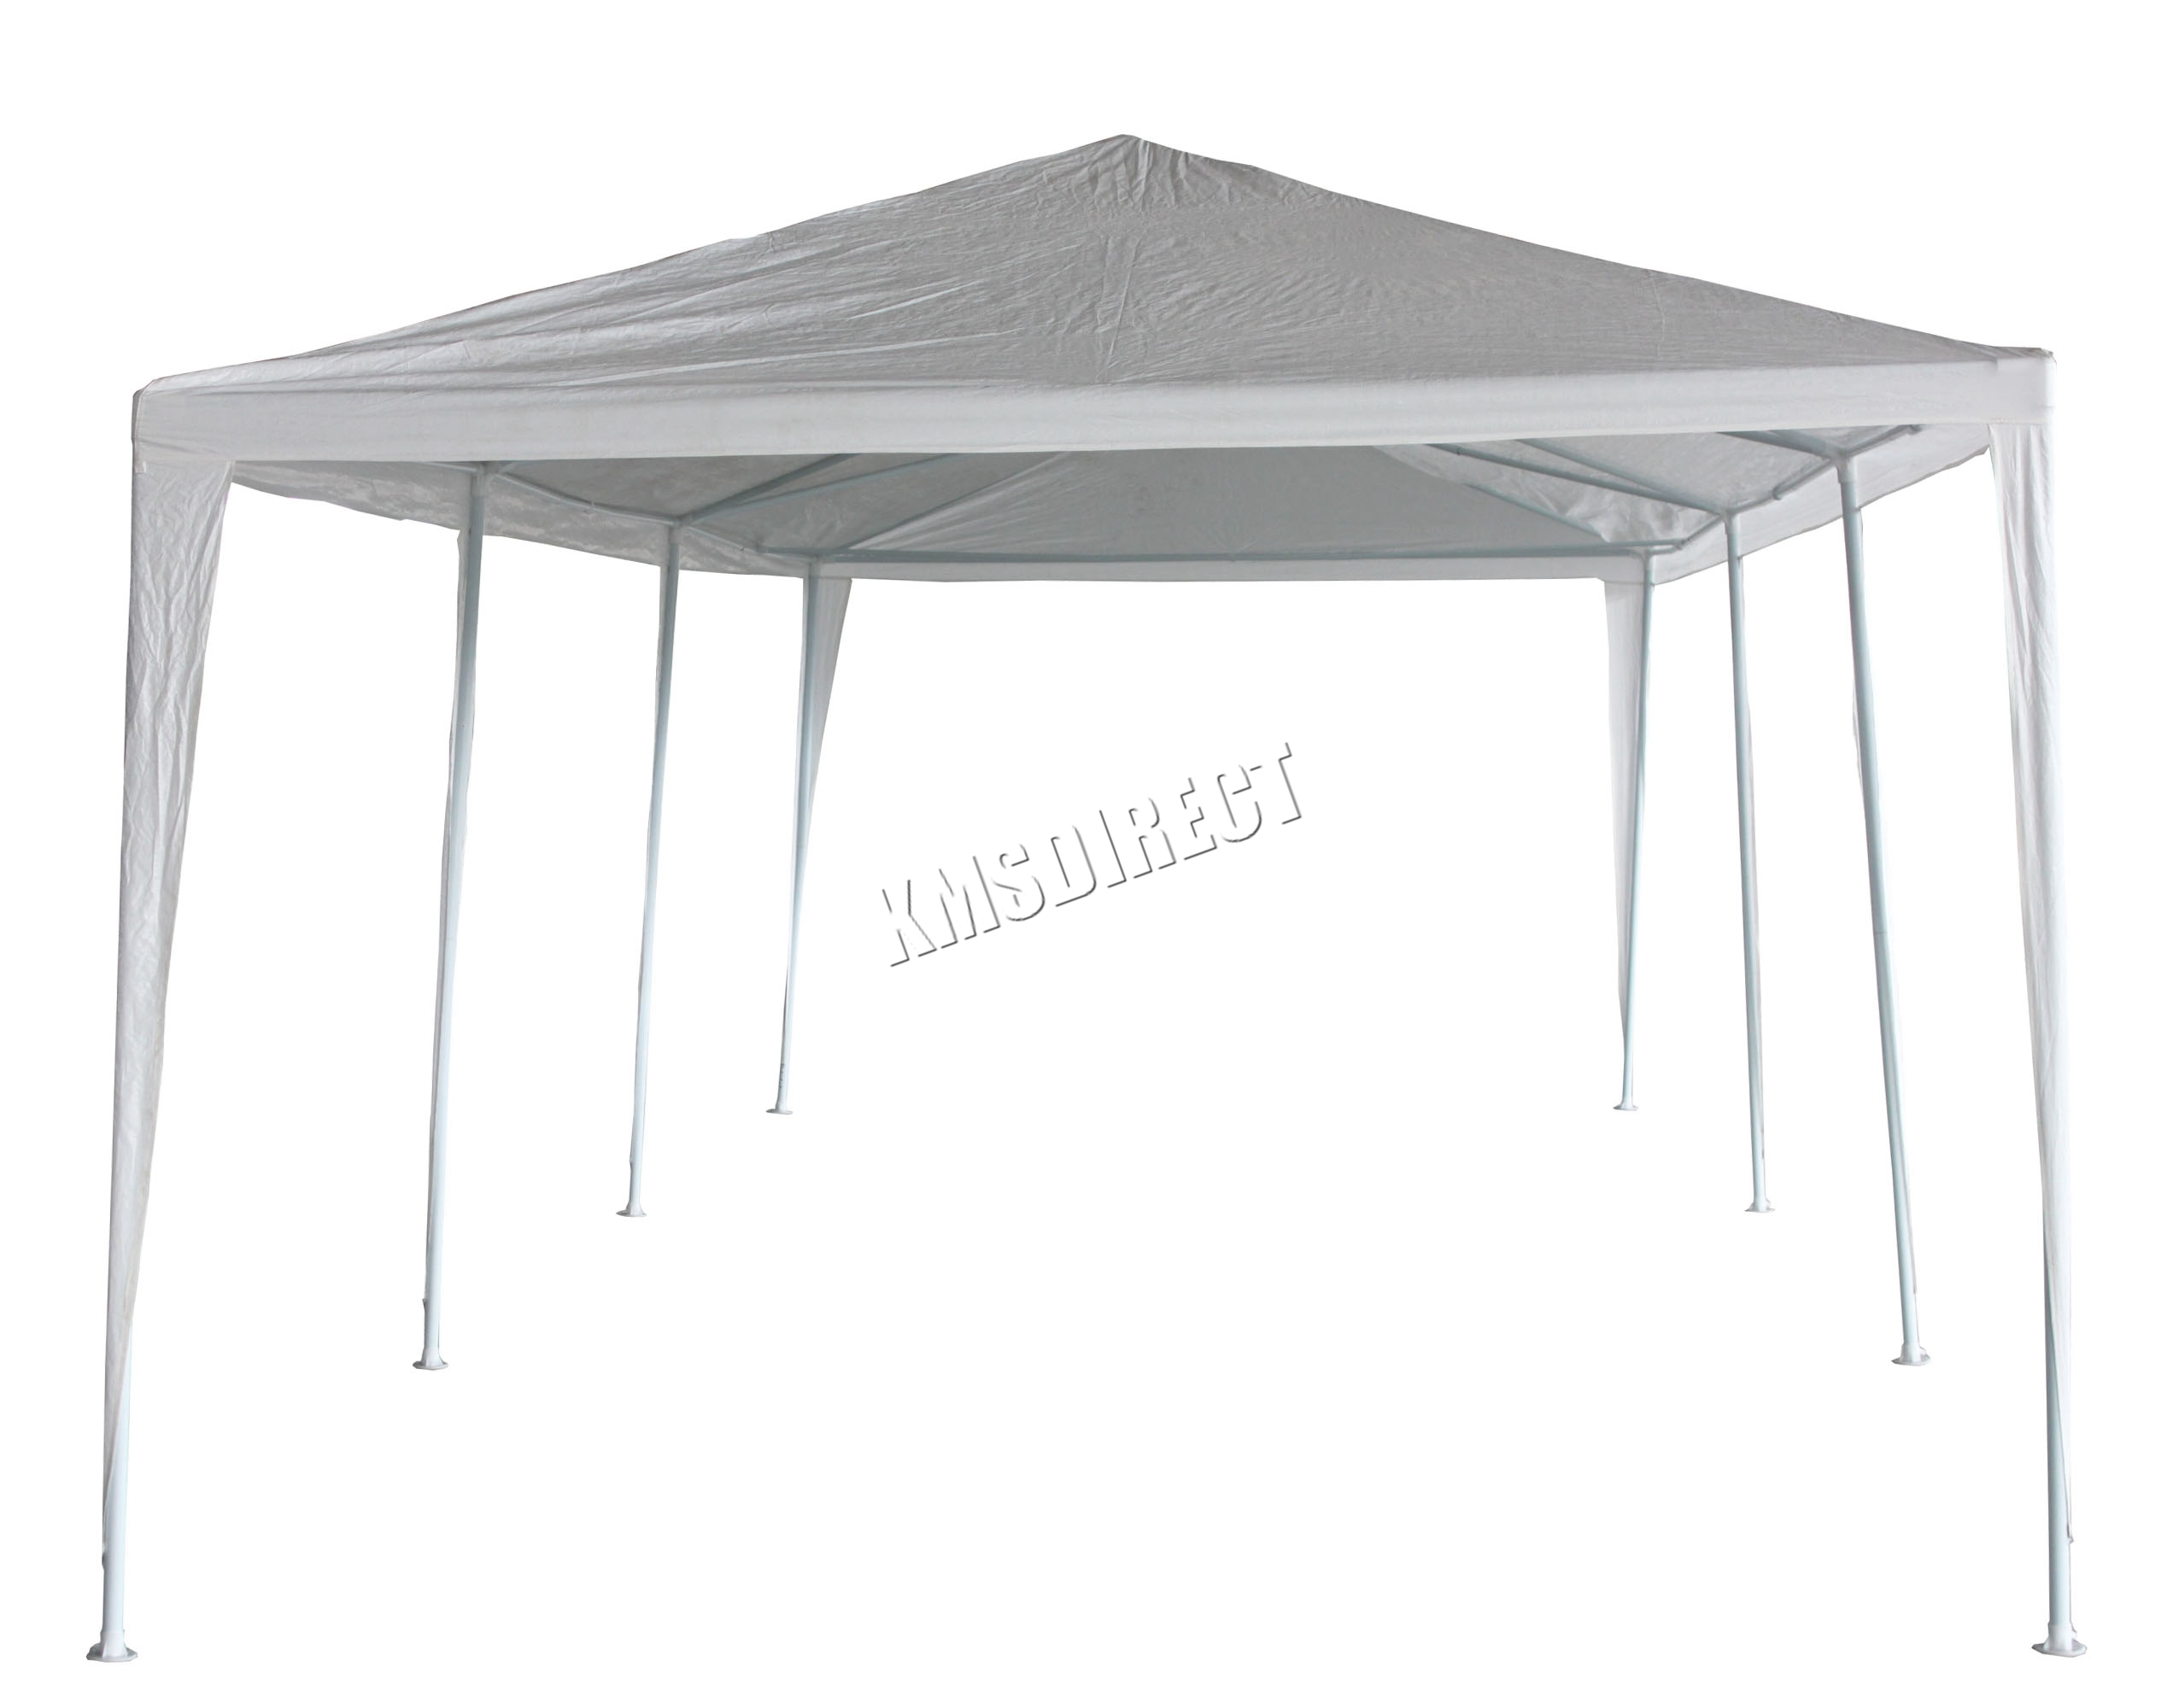 Sentinel 3m x 9m White Waterproof Outdoor Garden Gazebo Party Tent Marquee Canopy New  sc 1 st  eBay & 3m x 9m White Waterproof Outdoor Garden Gazebo Party Tent Marquee ...